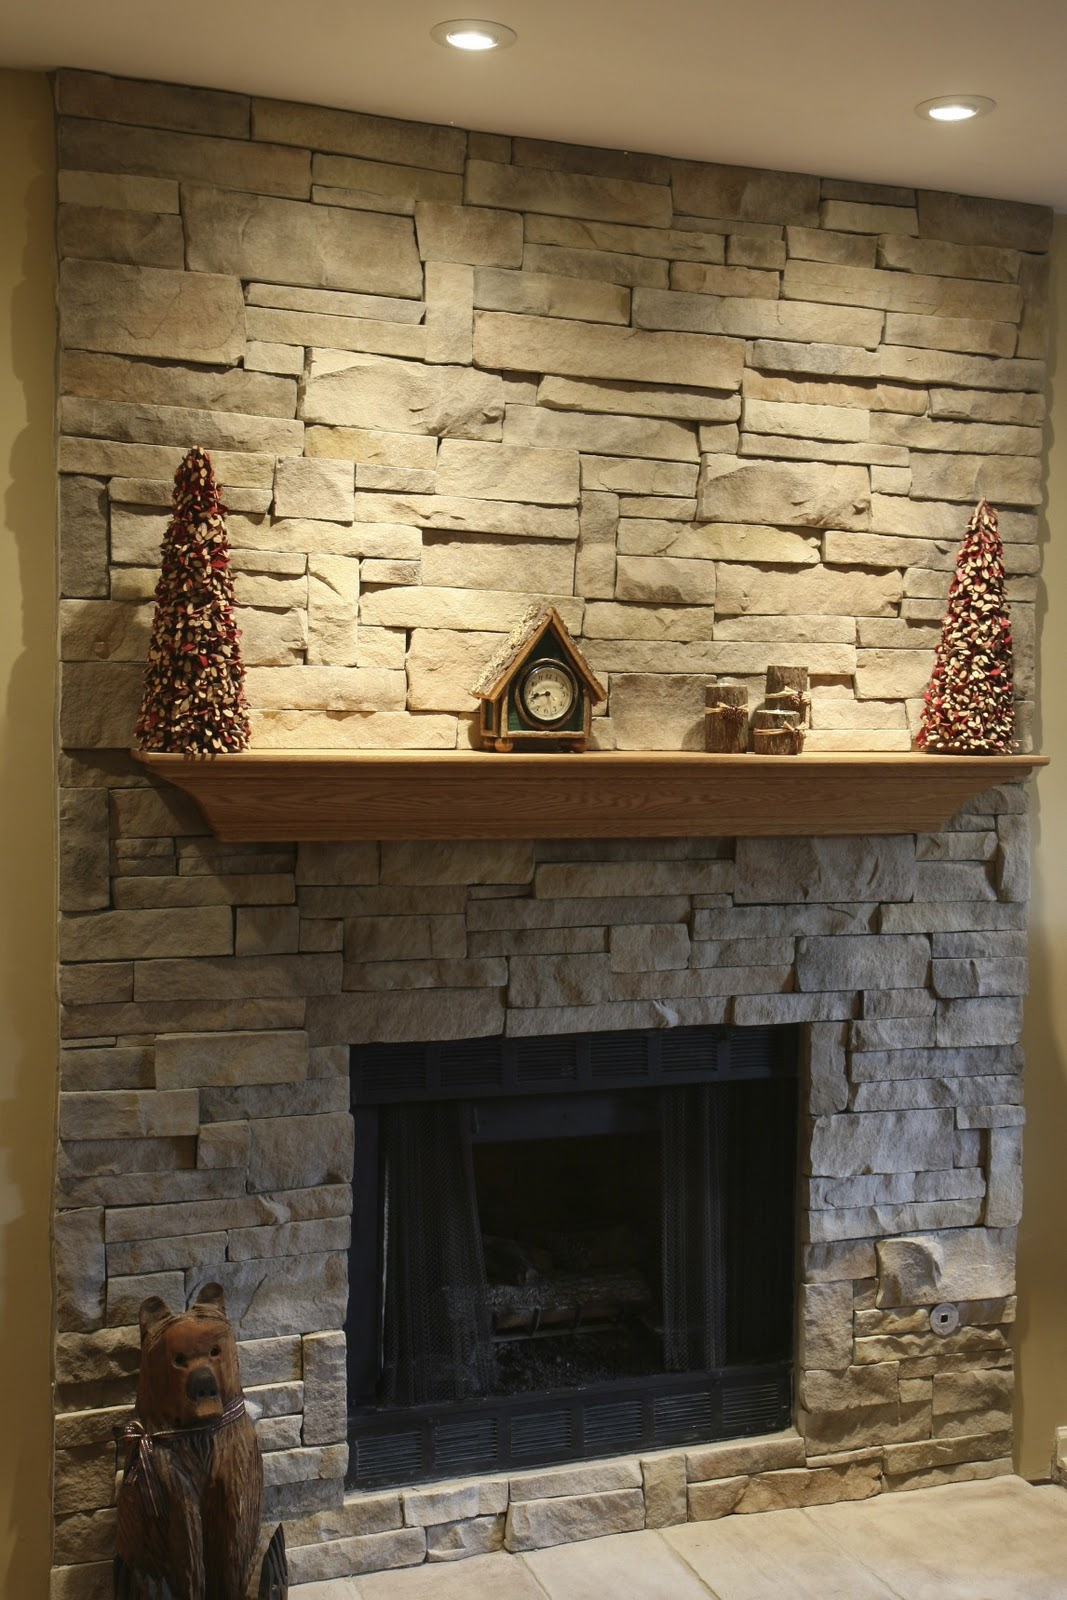 North Star Stone- Stone Fireplaces & Stone Exteriors: Ledge Stone for ...